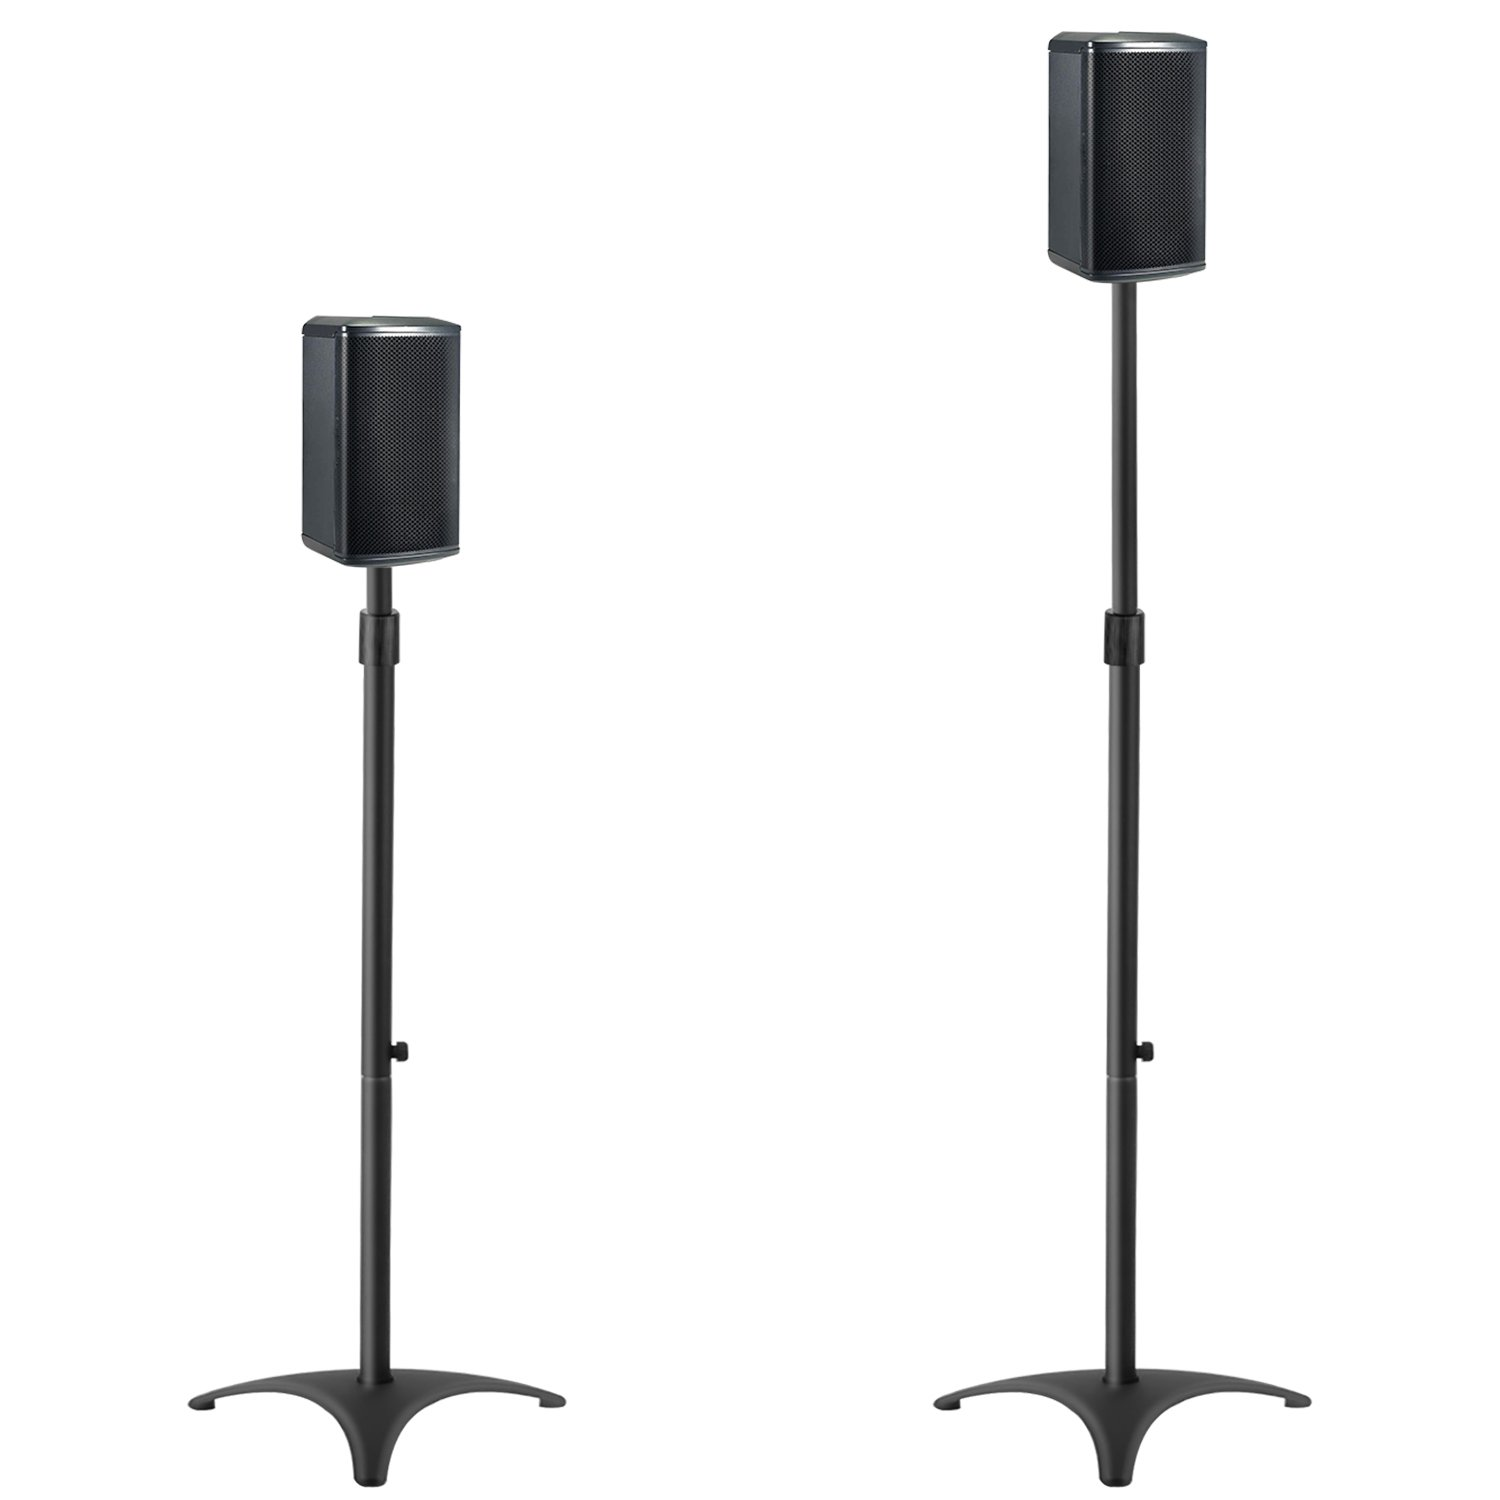 Mounting Dream MD5401 Height Adjustable Speaker Stands Mounts, Two in One Floor Stands, Heavy Duty Base and ExtendableTube with 11 LBS Capacity Per Stand, 35.5-48'' Height Adjustment